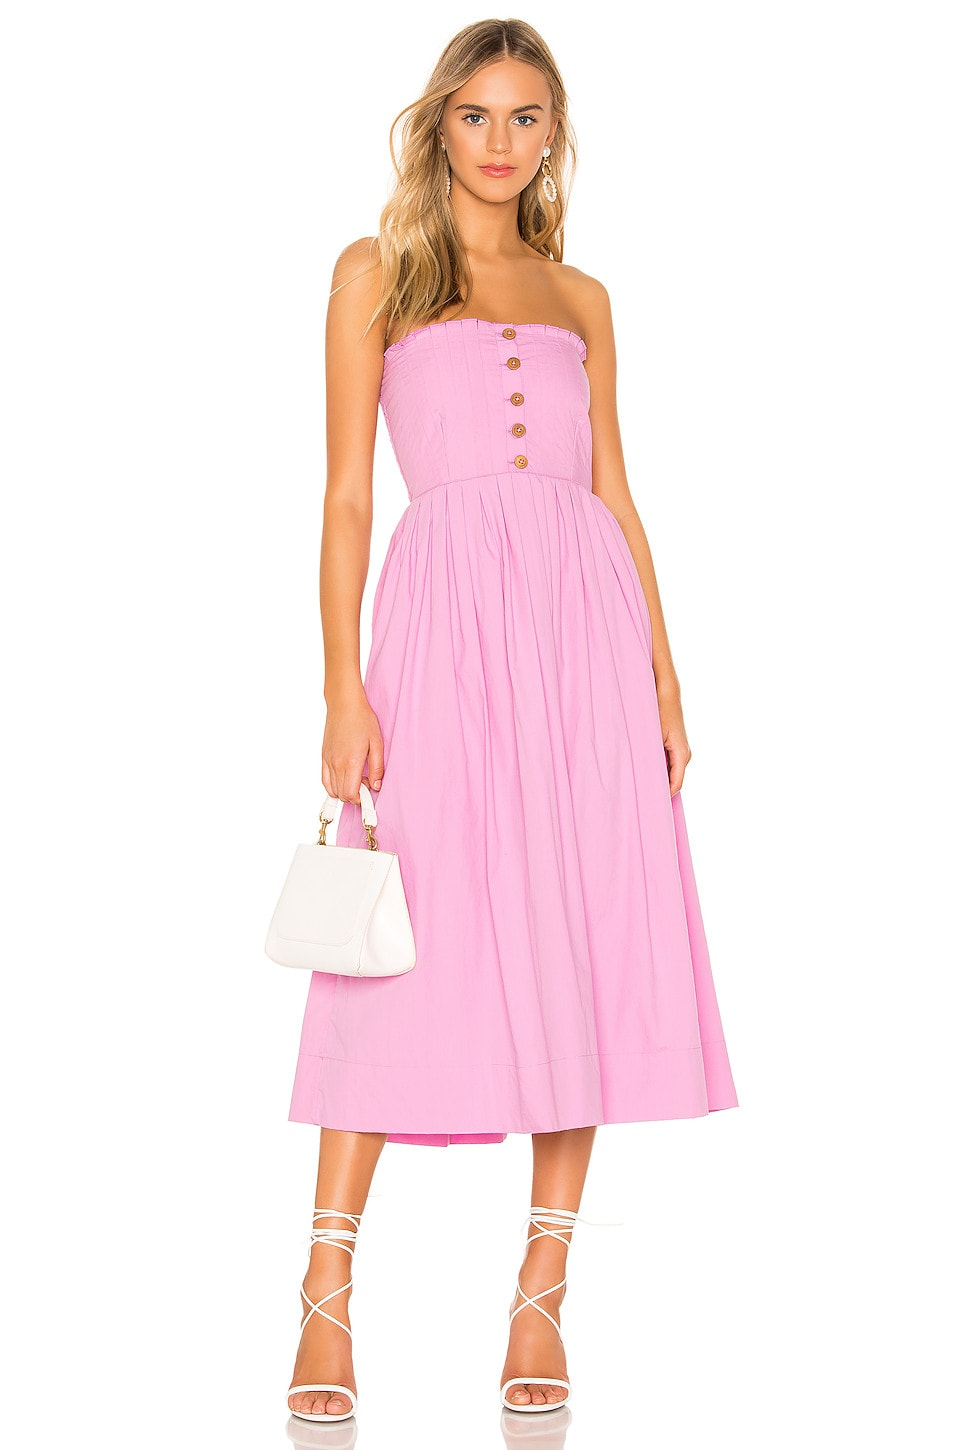 Free People Dresses FREE PEOPLE LILAH PLEATED TUBE DRESS IN PINK.